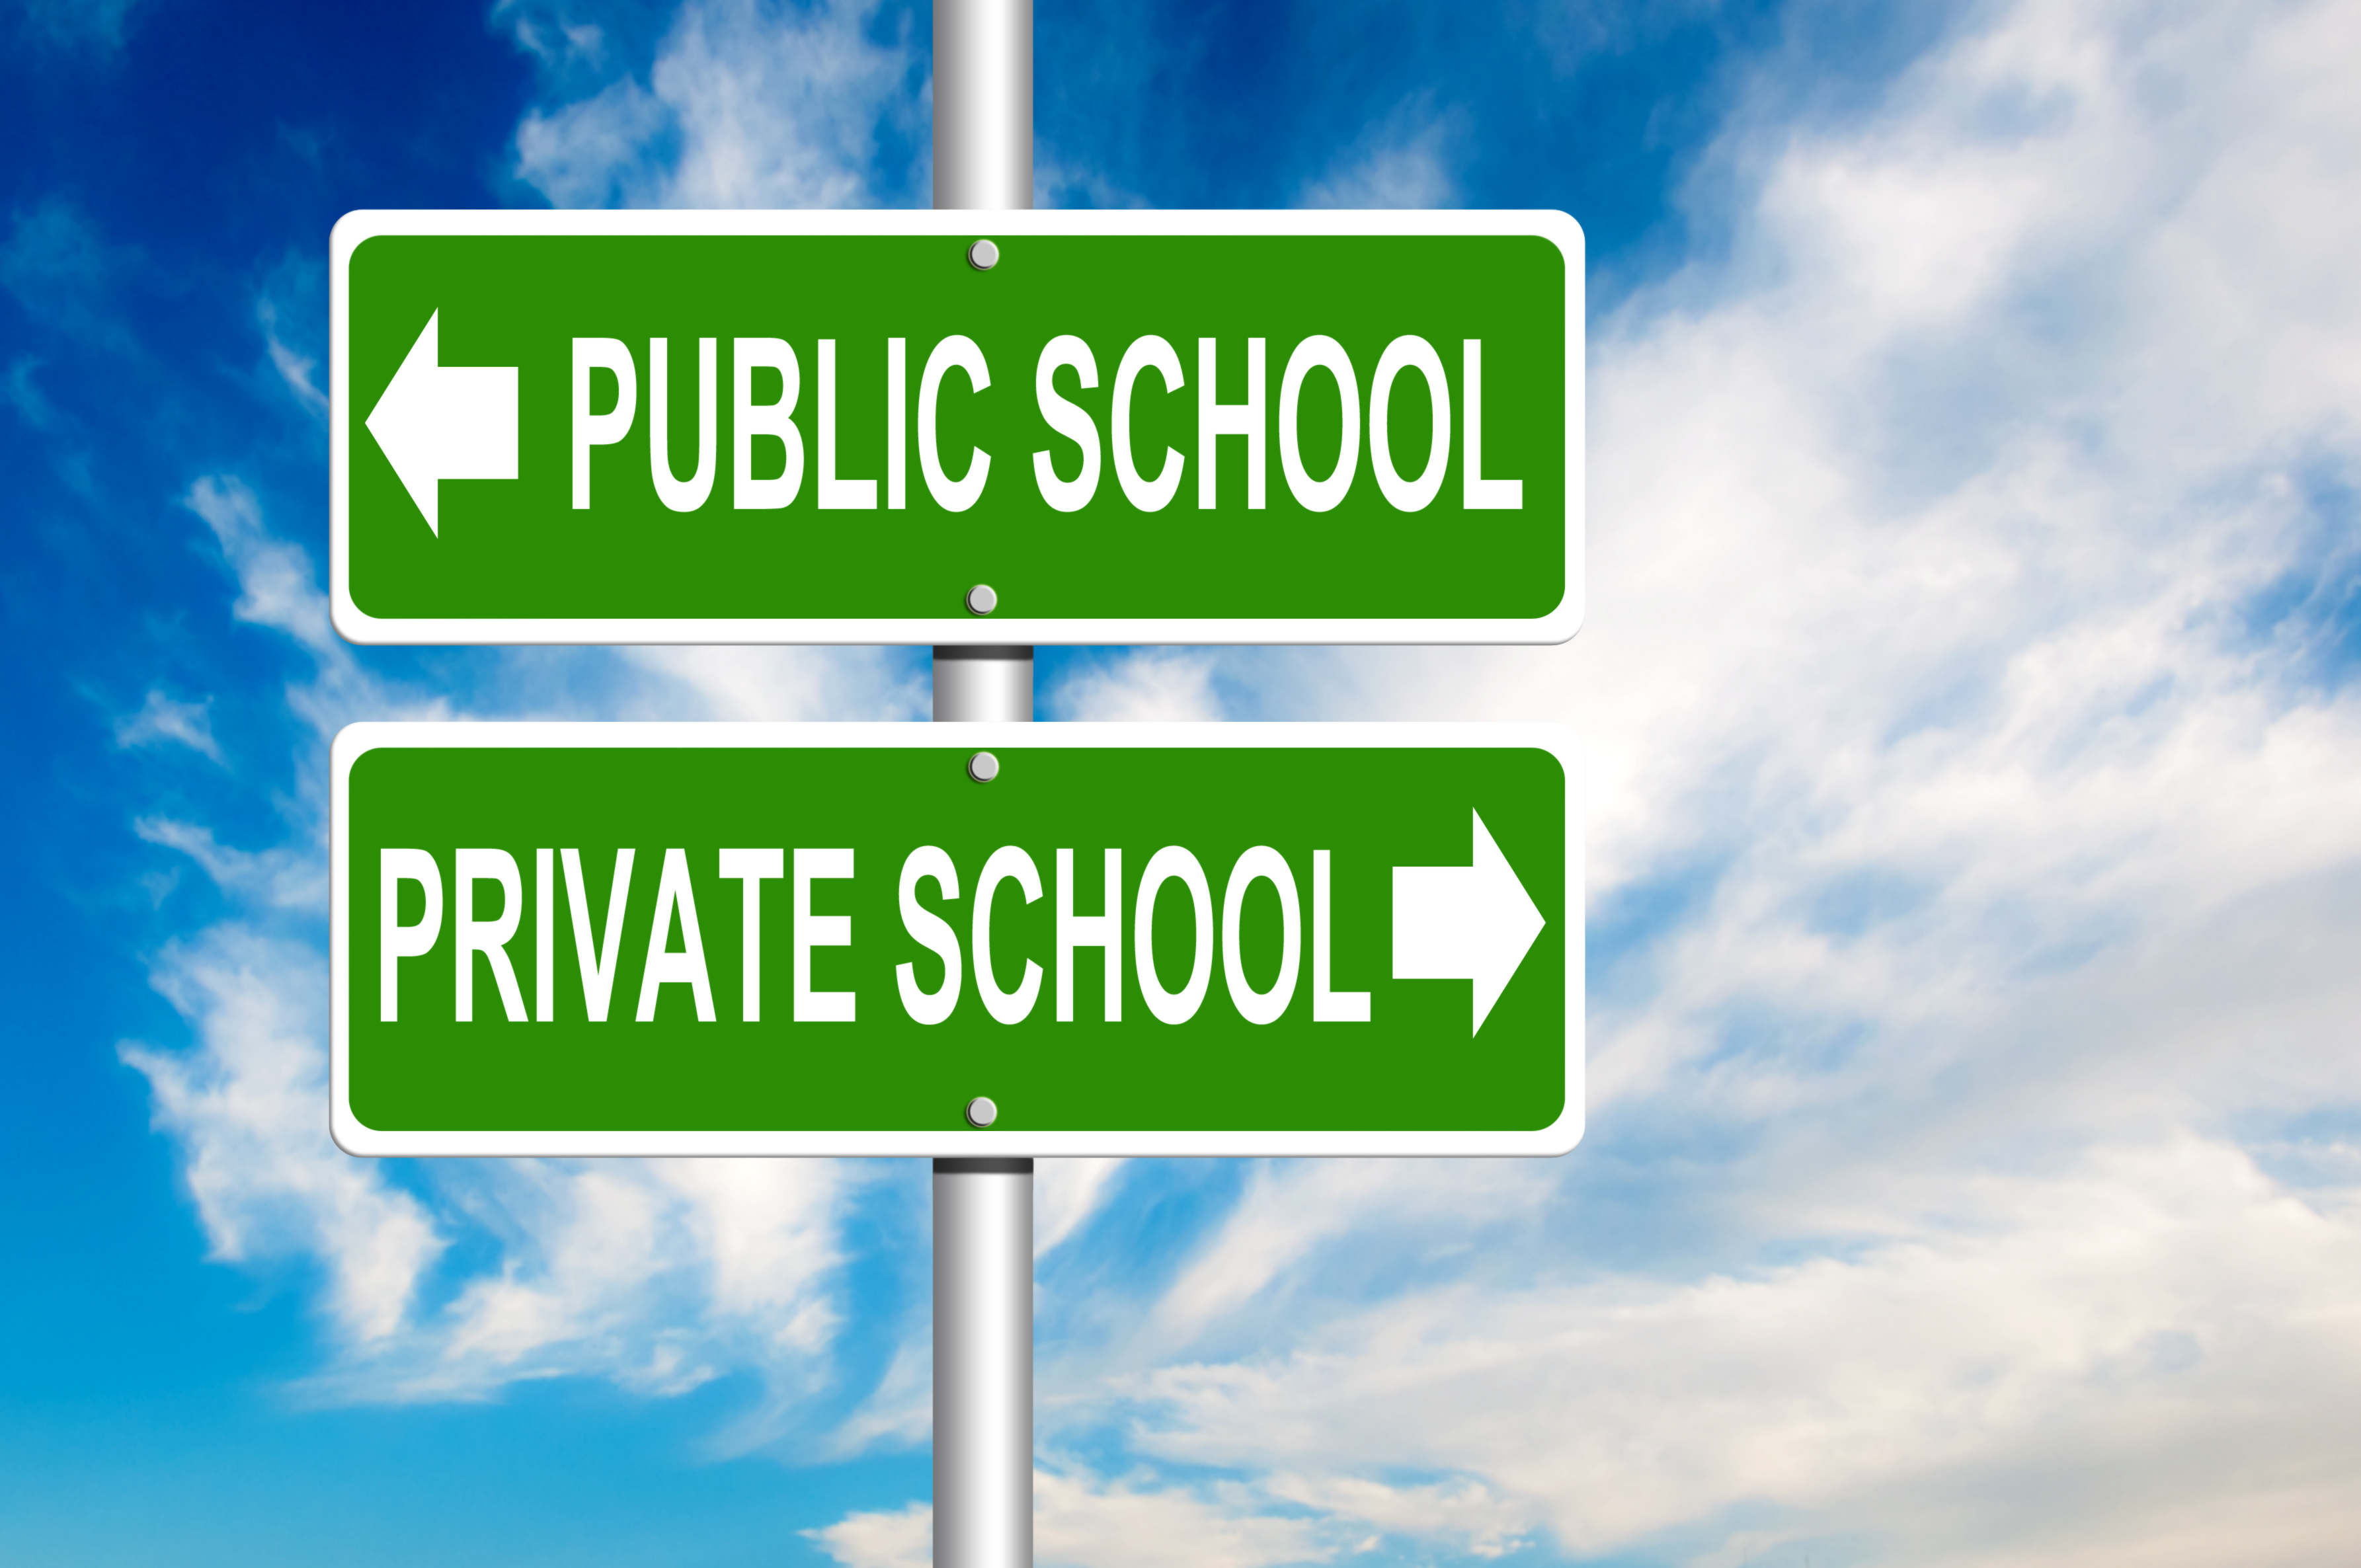 a comparison between the quality of public and private education 5 major differences between public and private schools share flipboard email print  education is an important part of raising children and preparing them to live successful lives for many families, finding the right school environment isn't as easy as just enrolling at the local public school  class size is one of the major differences.